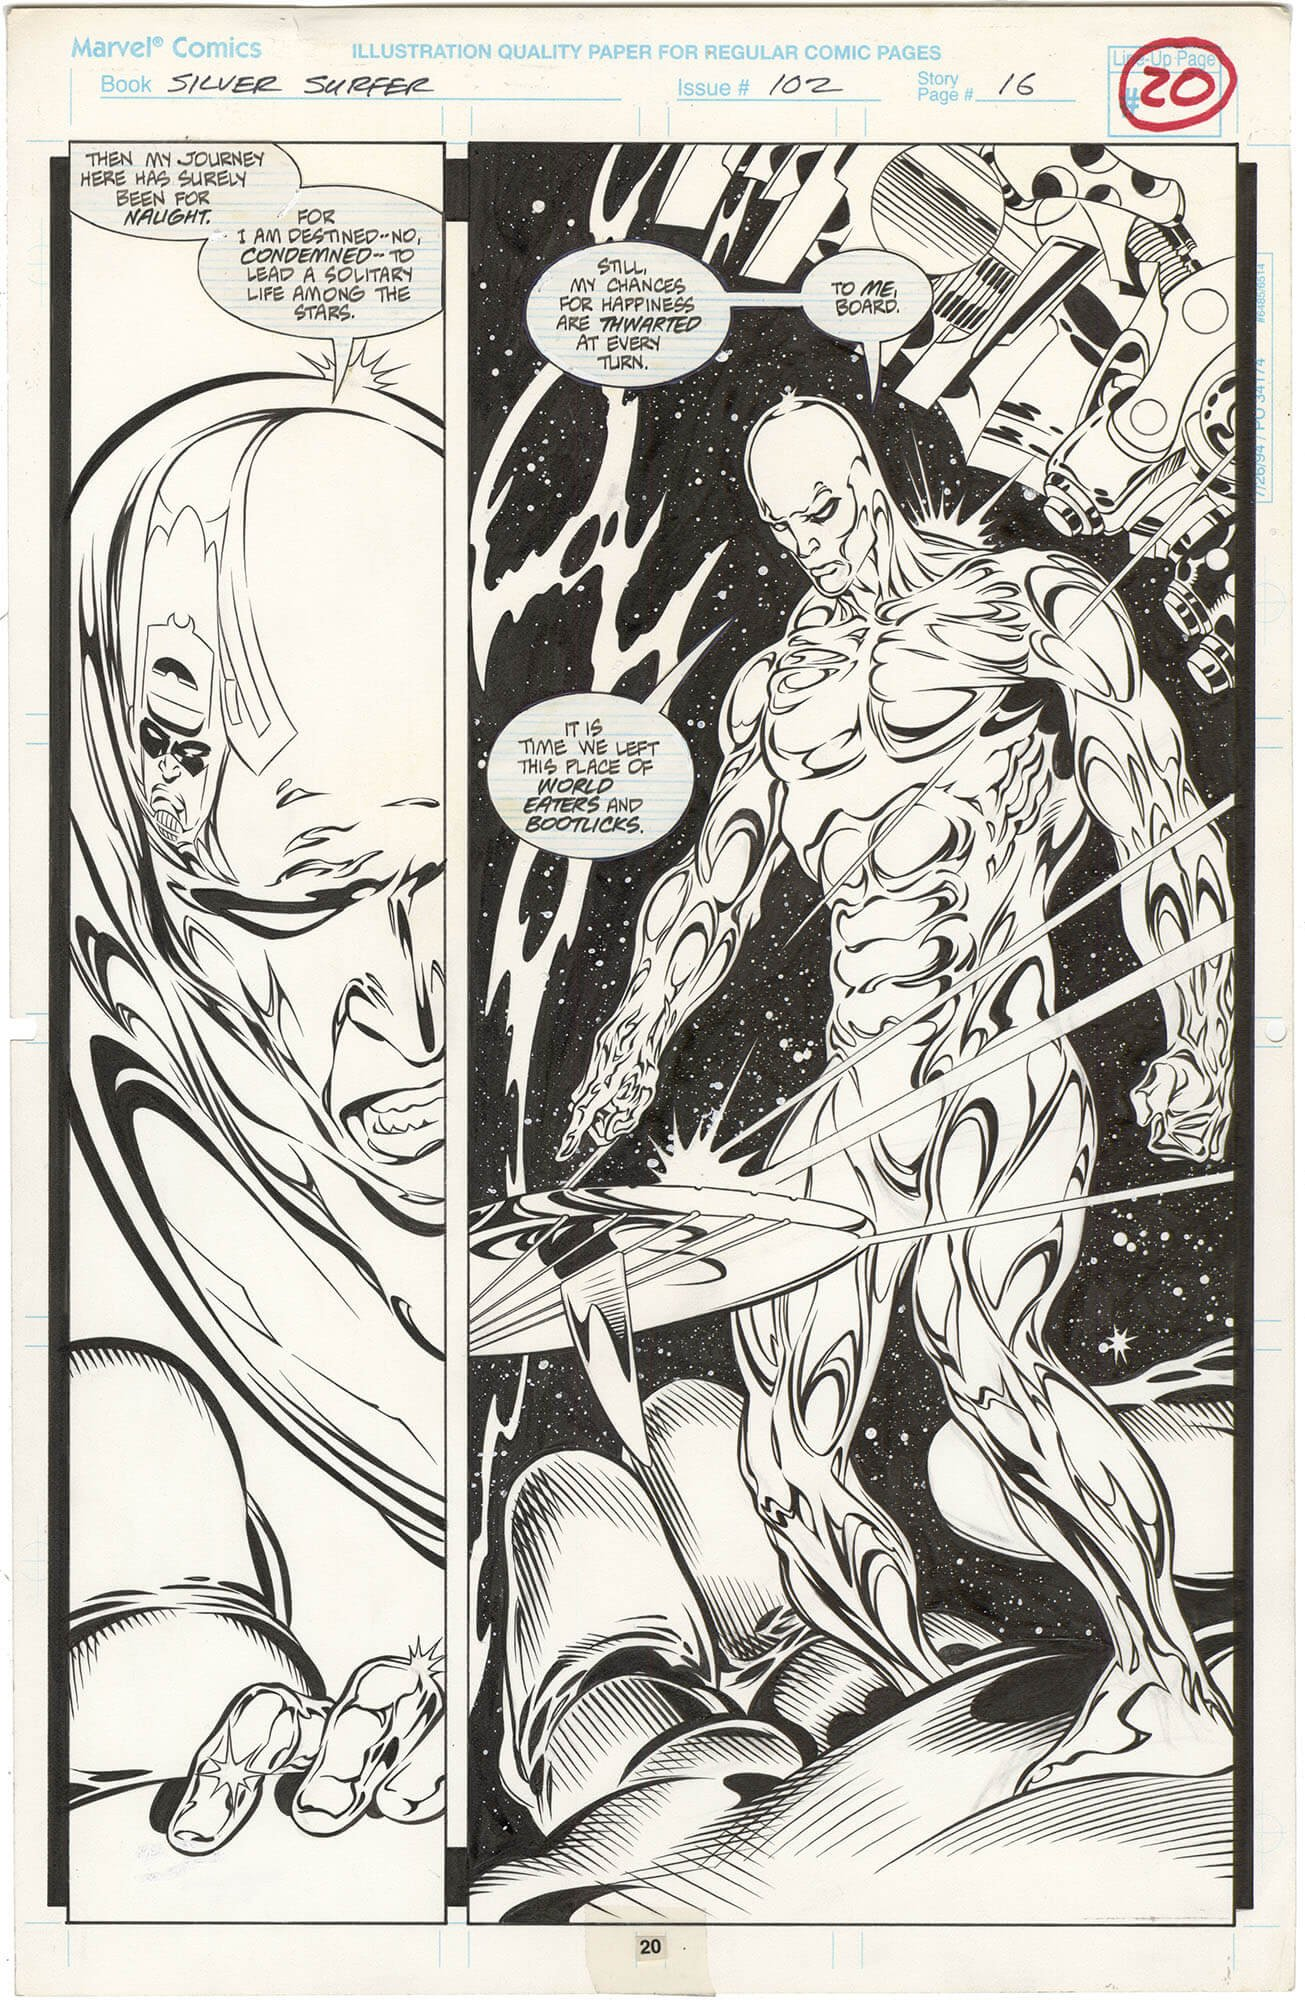 Silver Surfer #102 p20 (⅔ Splash)